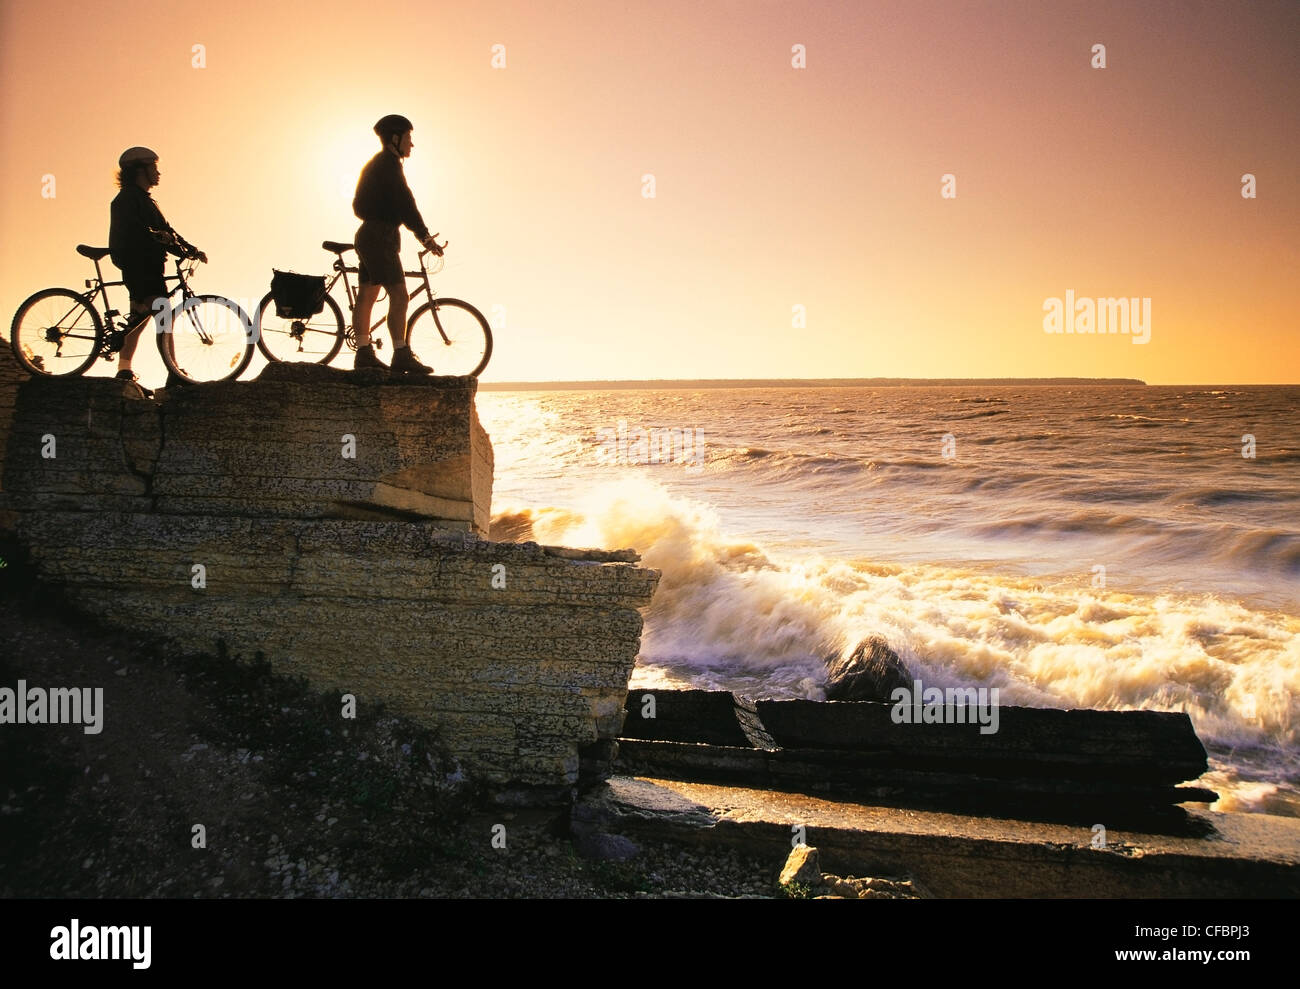 Cyclists along sedimentary rock cliffs, Hecla Provincial Park, Lake Winnipeg, Manitoba, Canada - Stock Image